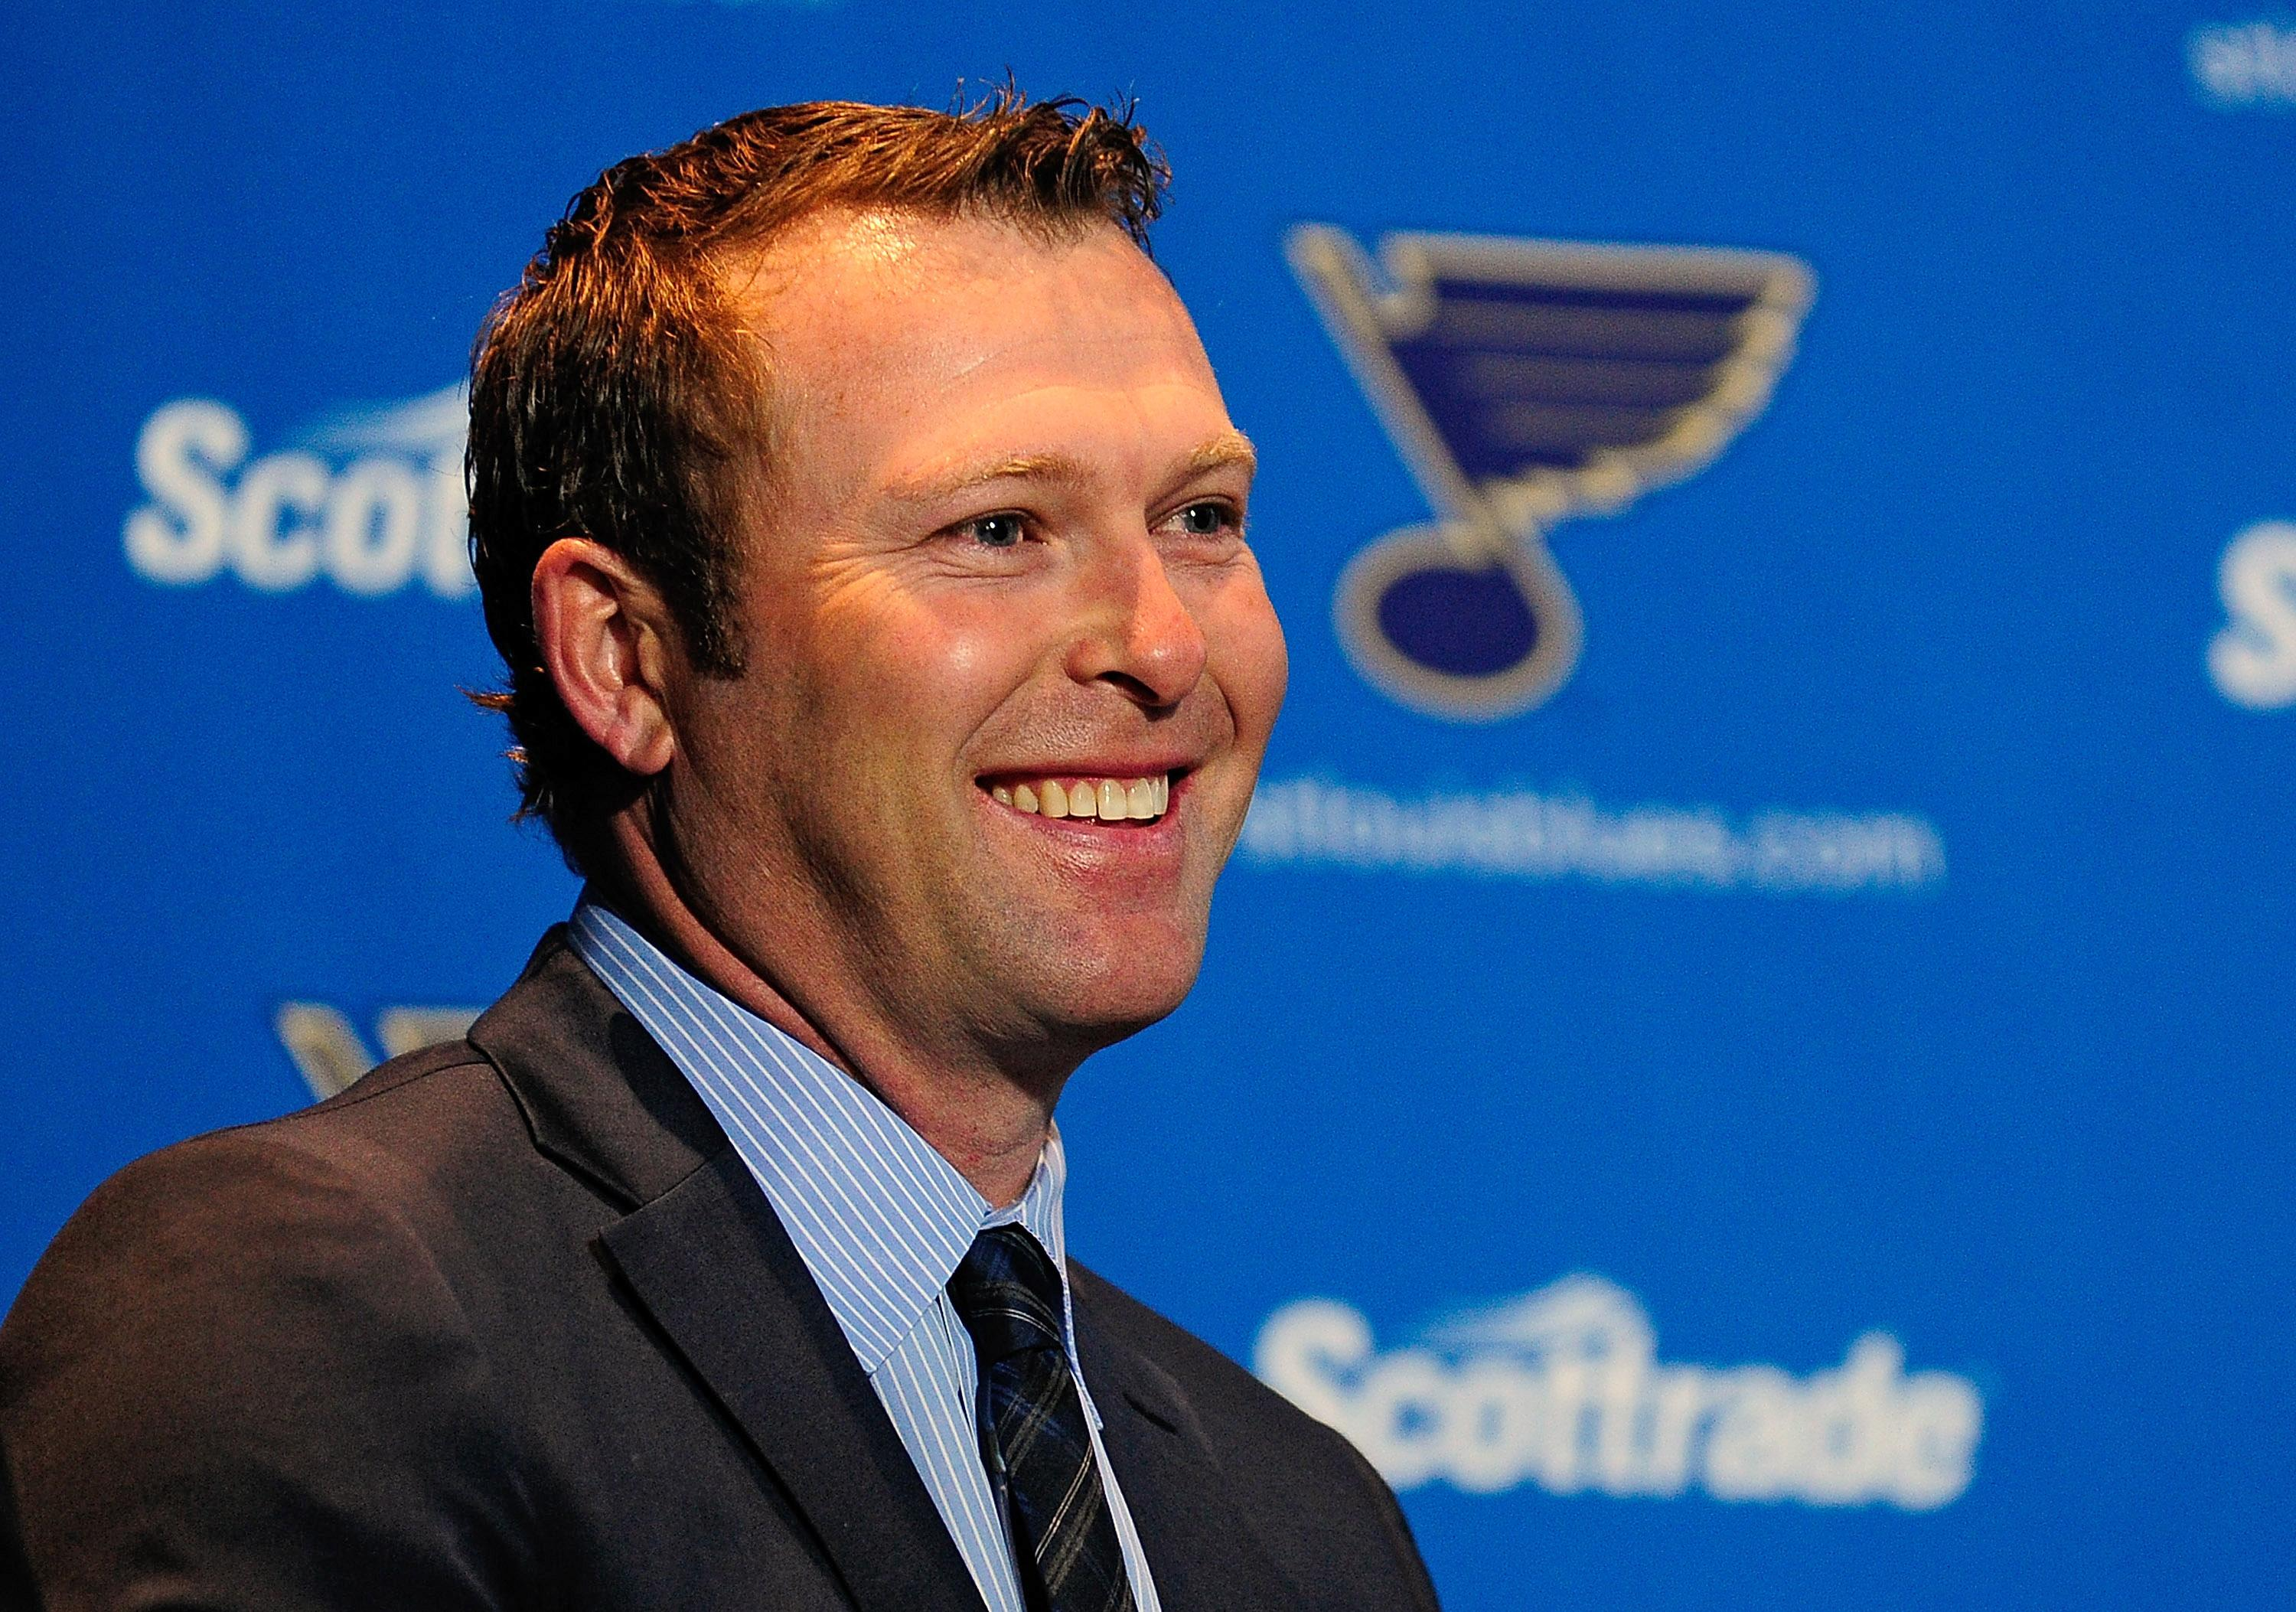 Olympic ice hockey hero Brodeur hangs up pads